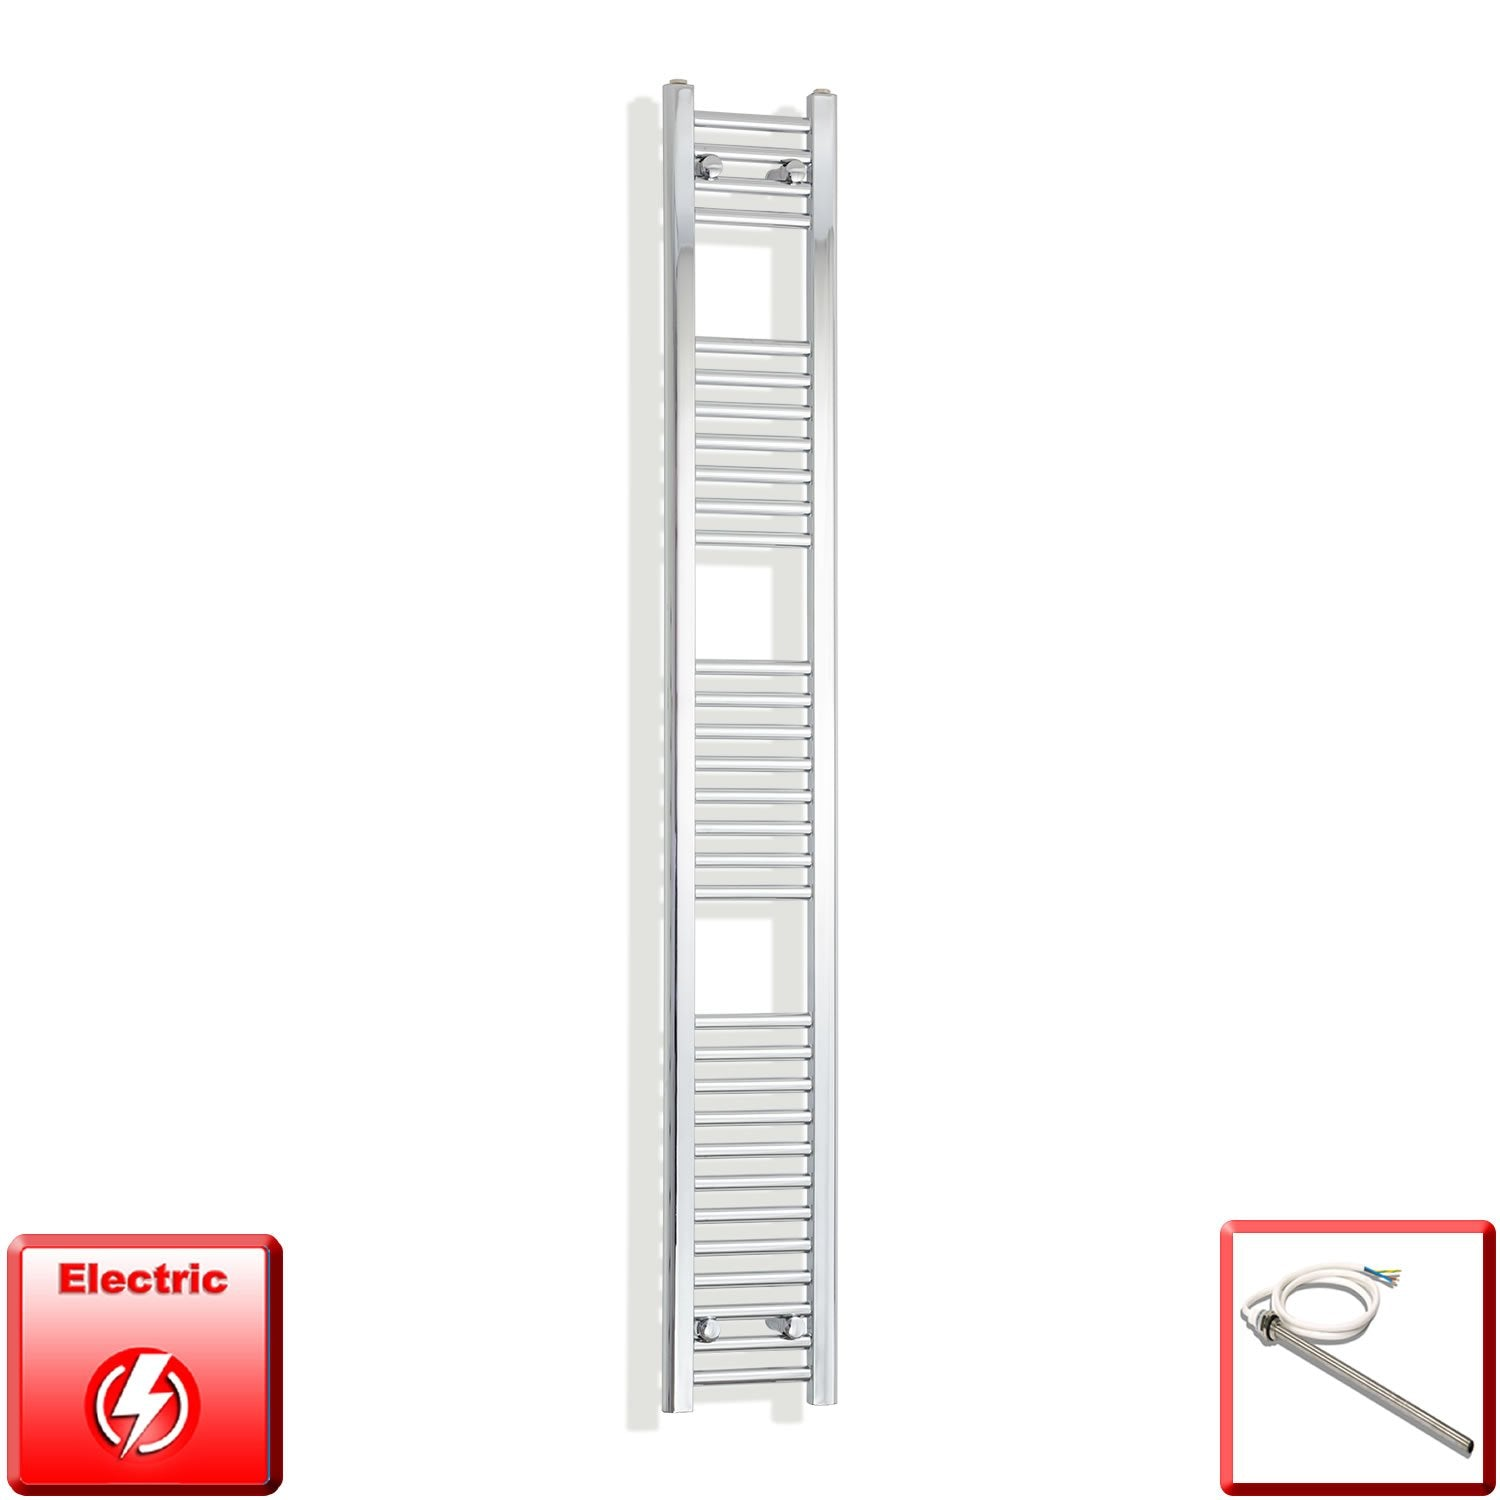 250mm Wide 1800mm High Flat Chrome Pre-Filled Electric Heated Towel Rail Radiator HTR,Single Heat Element